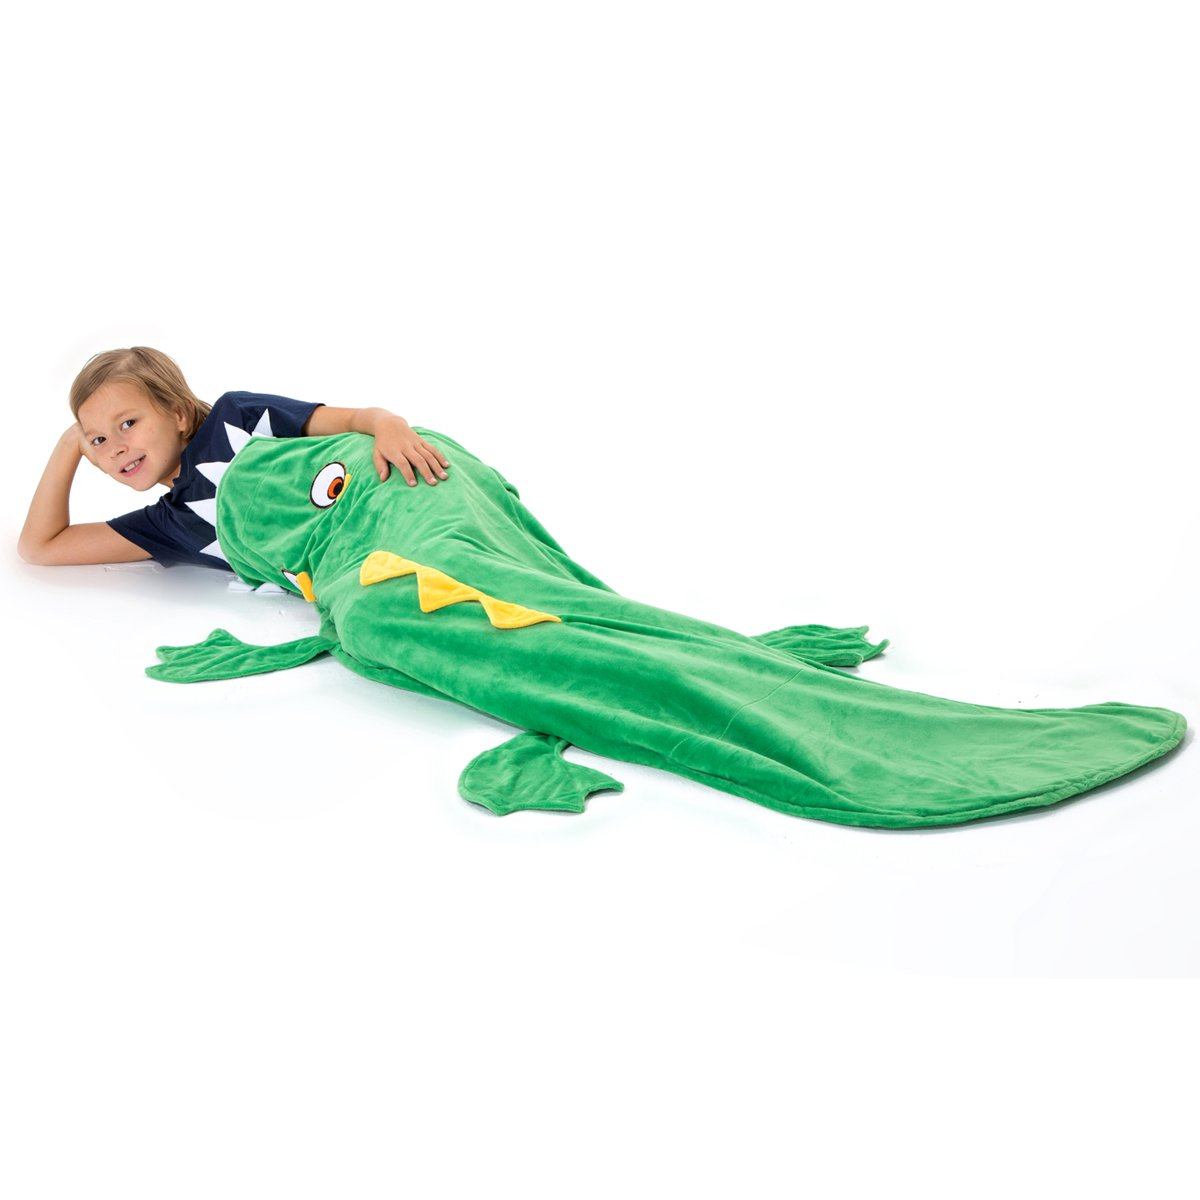 Echolife Green Crocodile Tail Blanket Soft Fleece Children Sleeping Bag Christmas Gifts for Kids 3-10 Years Old (Crocodile) by Echolife